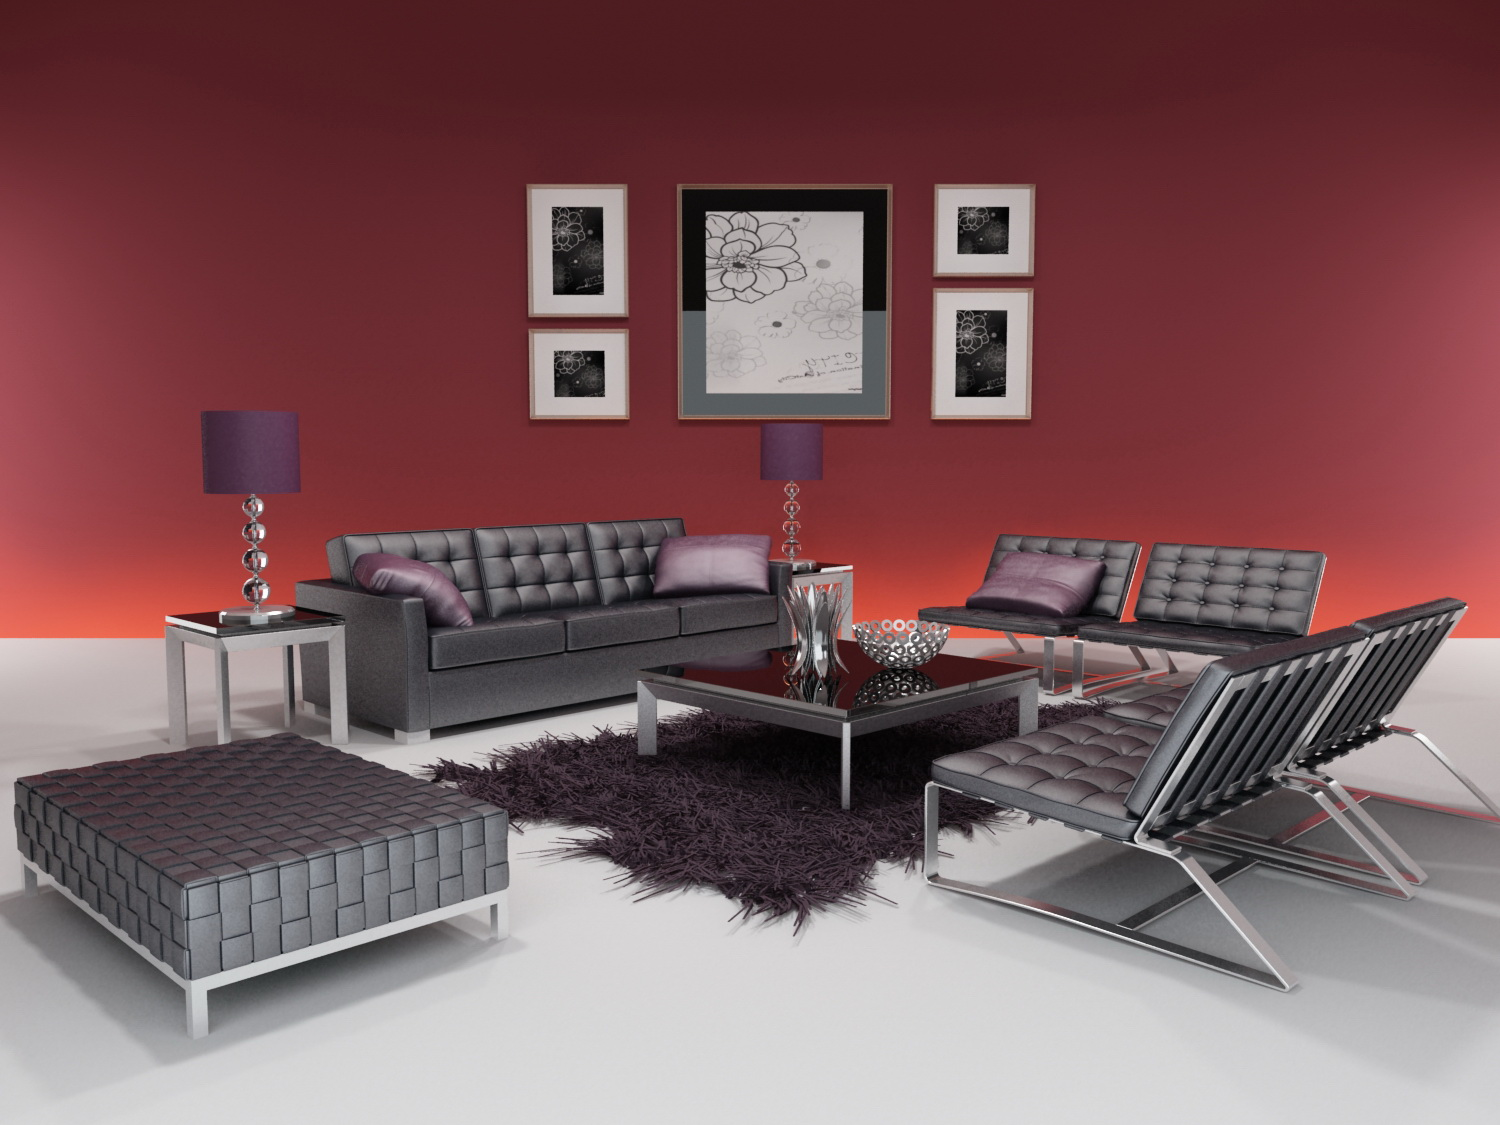 3d model of the whole furniture of modern style including materials